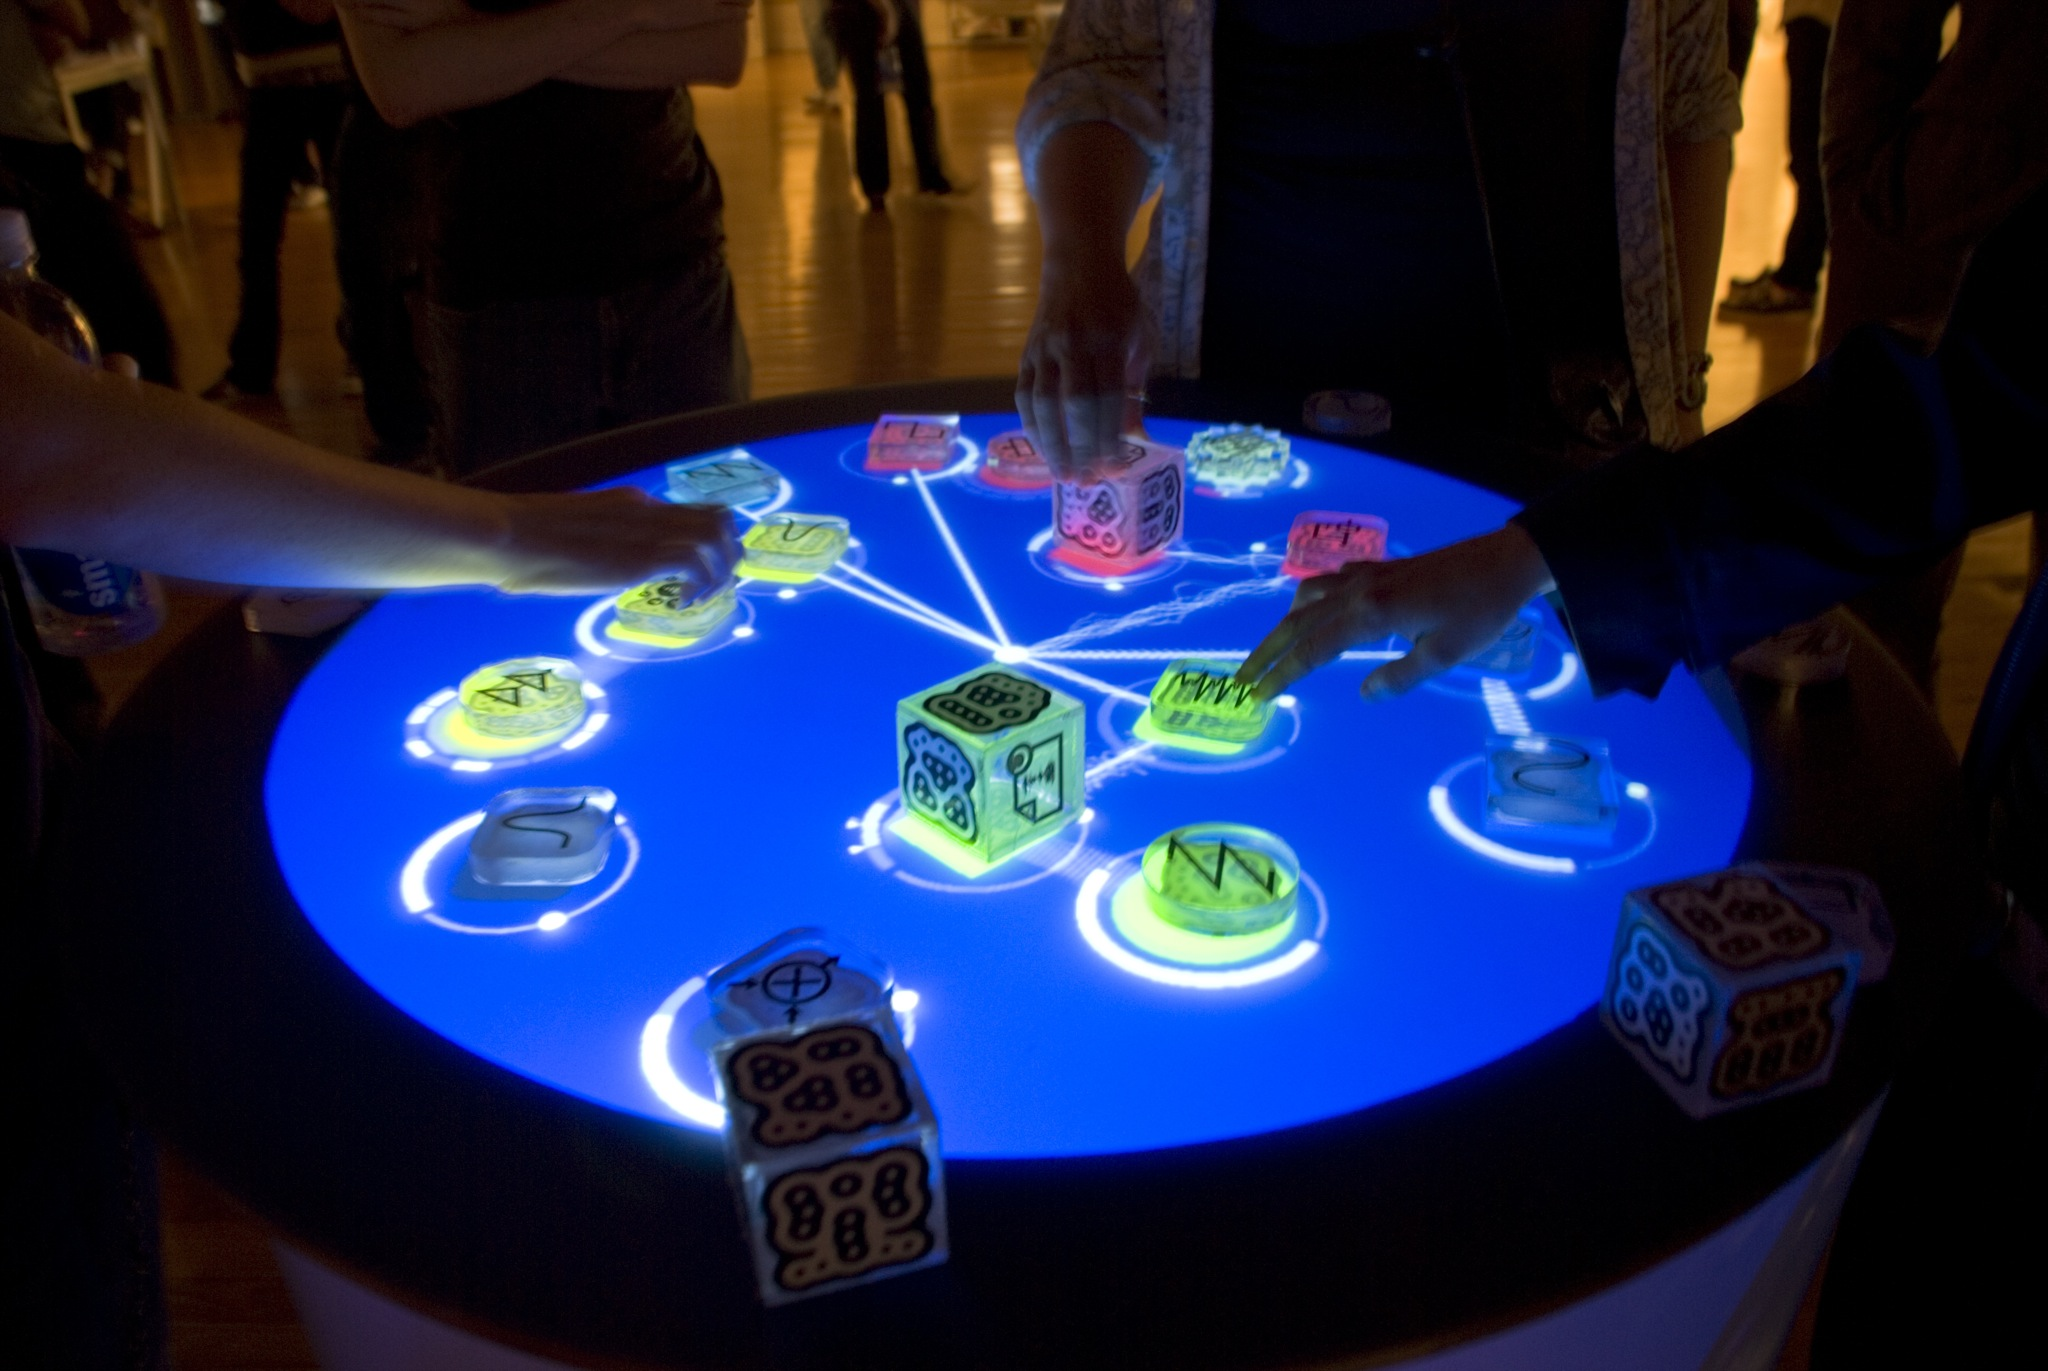 http://upload.wikimedia.org/wikipedia/commons/e/e3/Reactable_Multitouch.jpg